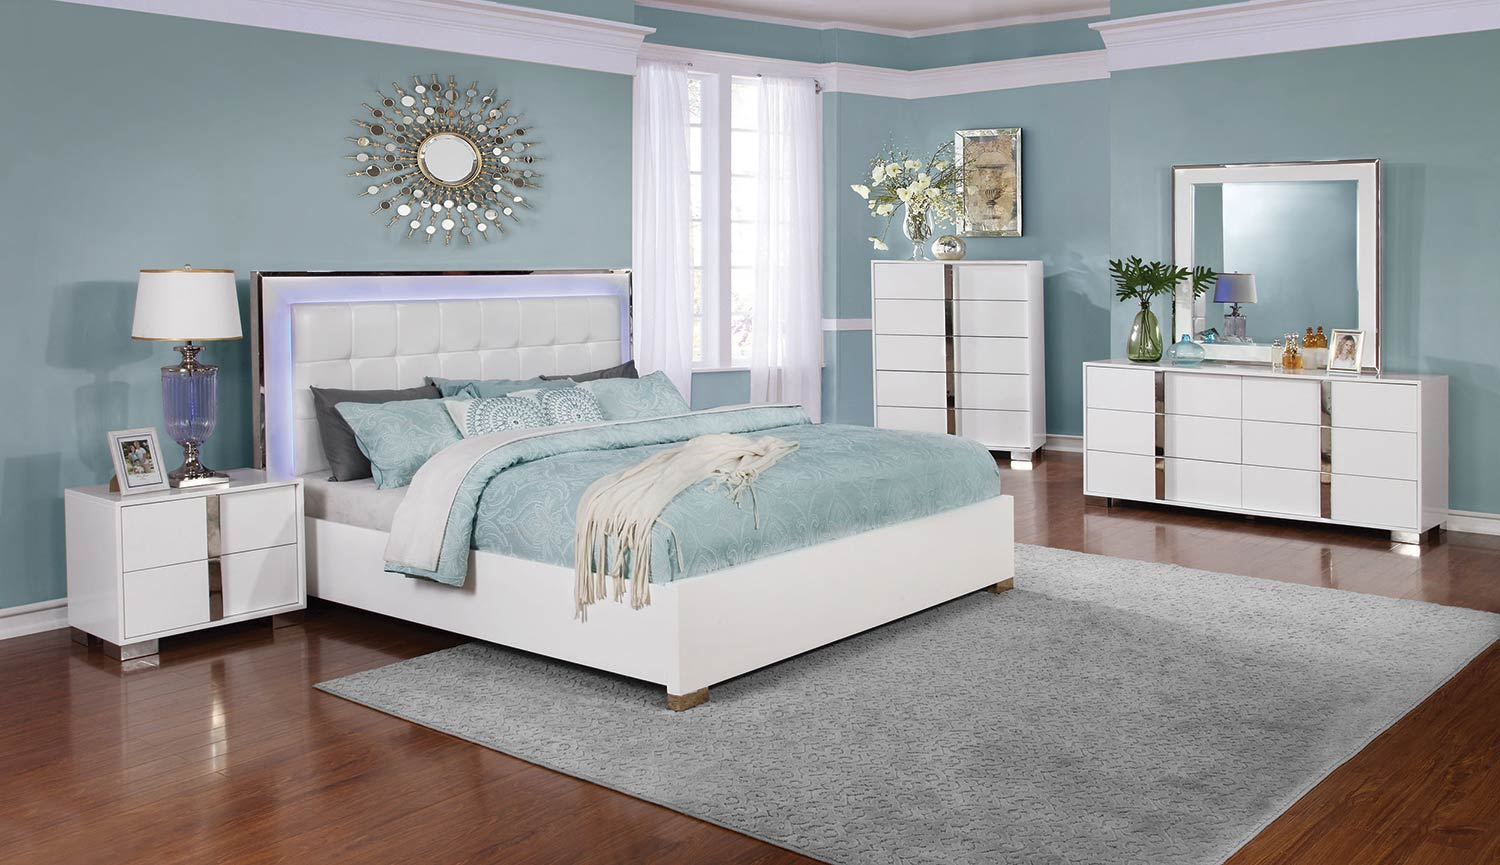 Coaster Traynor Bedroom Collection - Glossy White